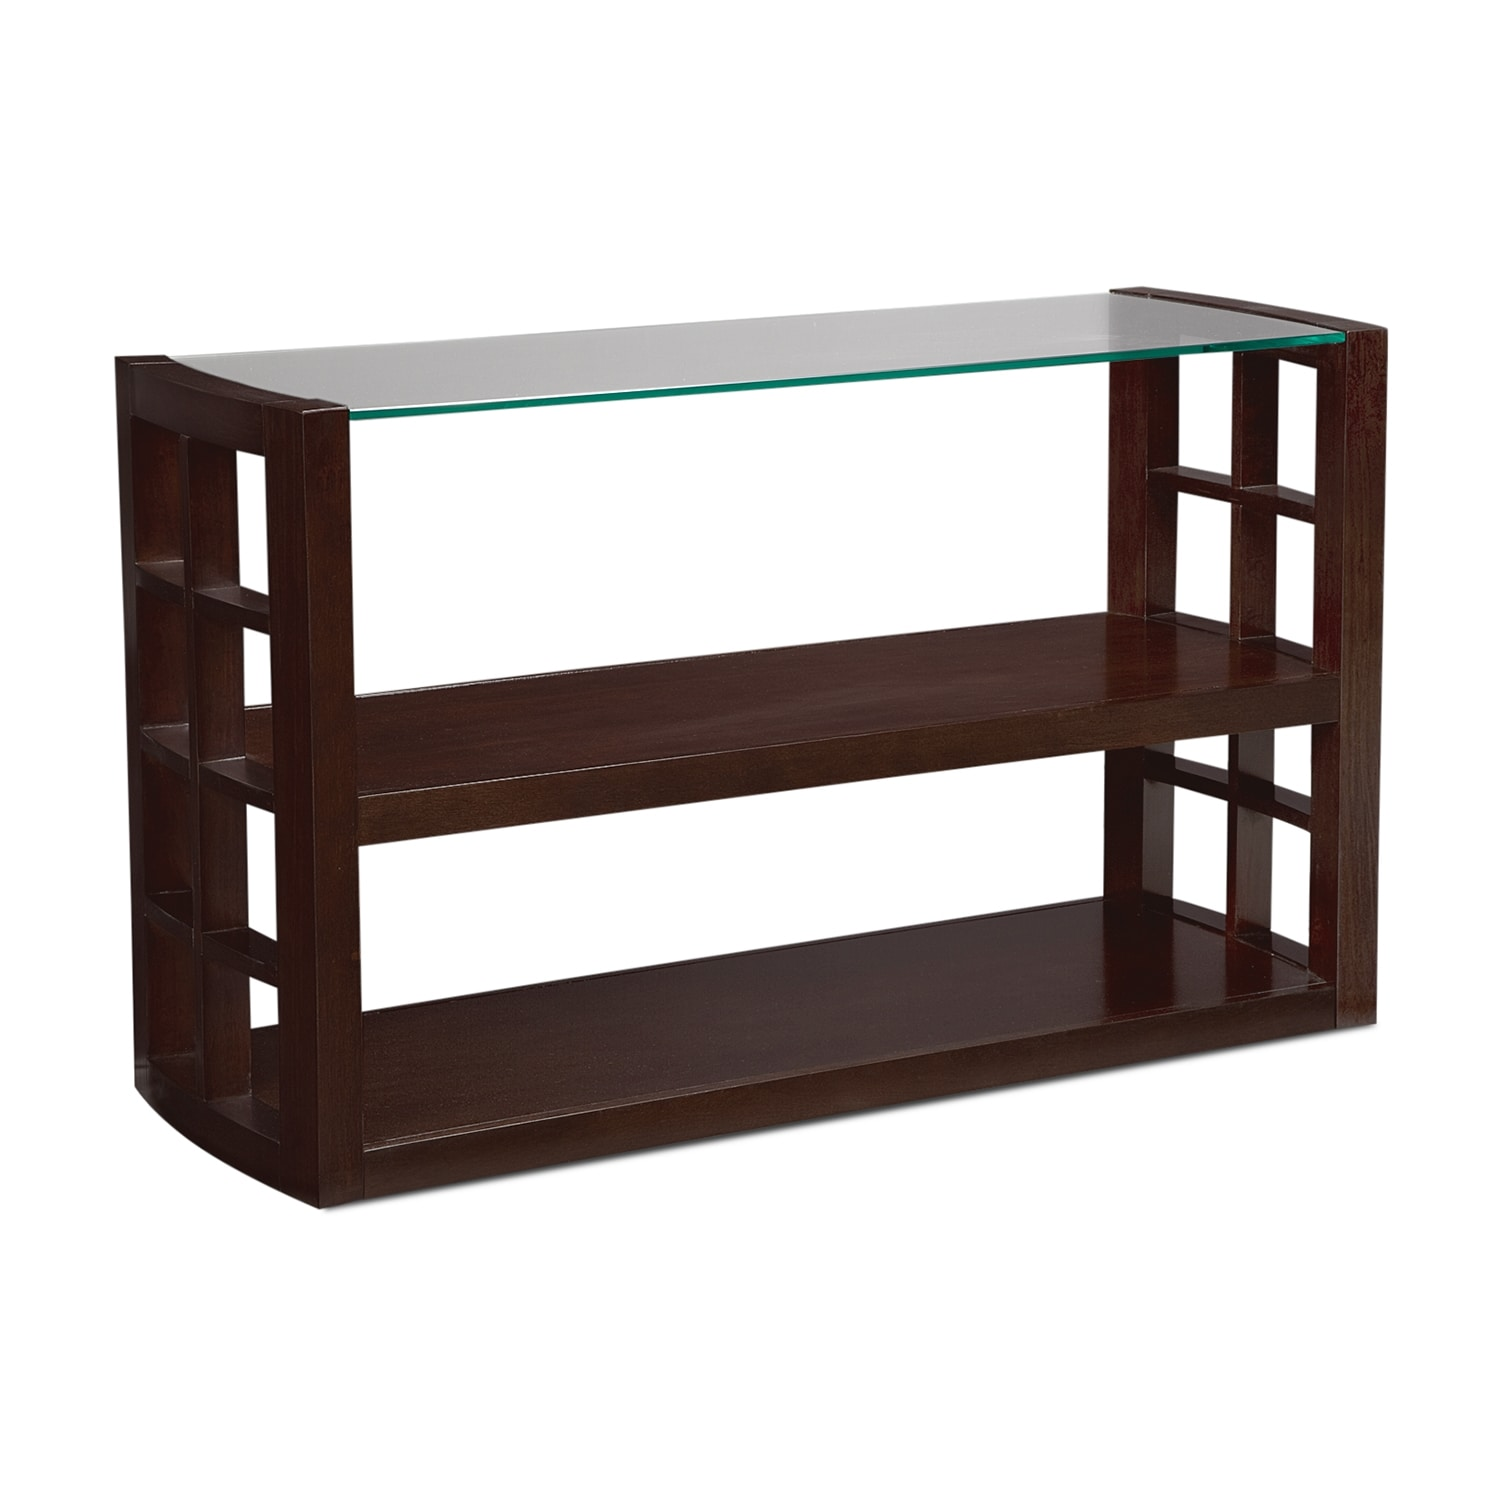 Daytona Sofa Table - Merlot